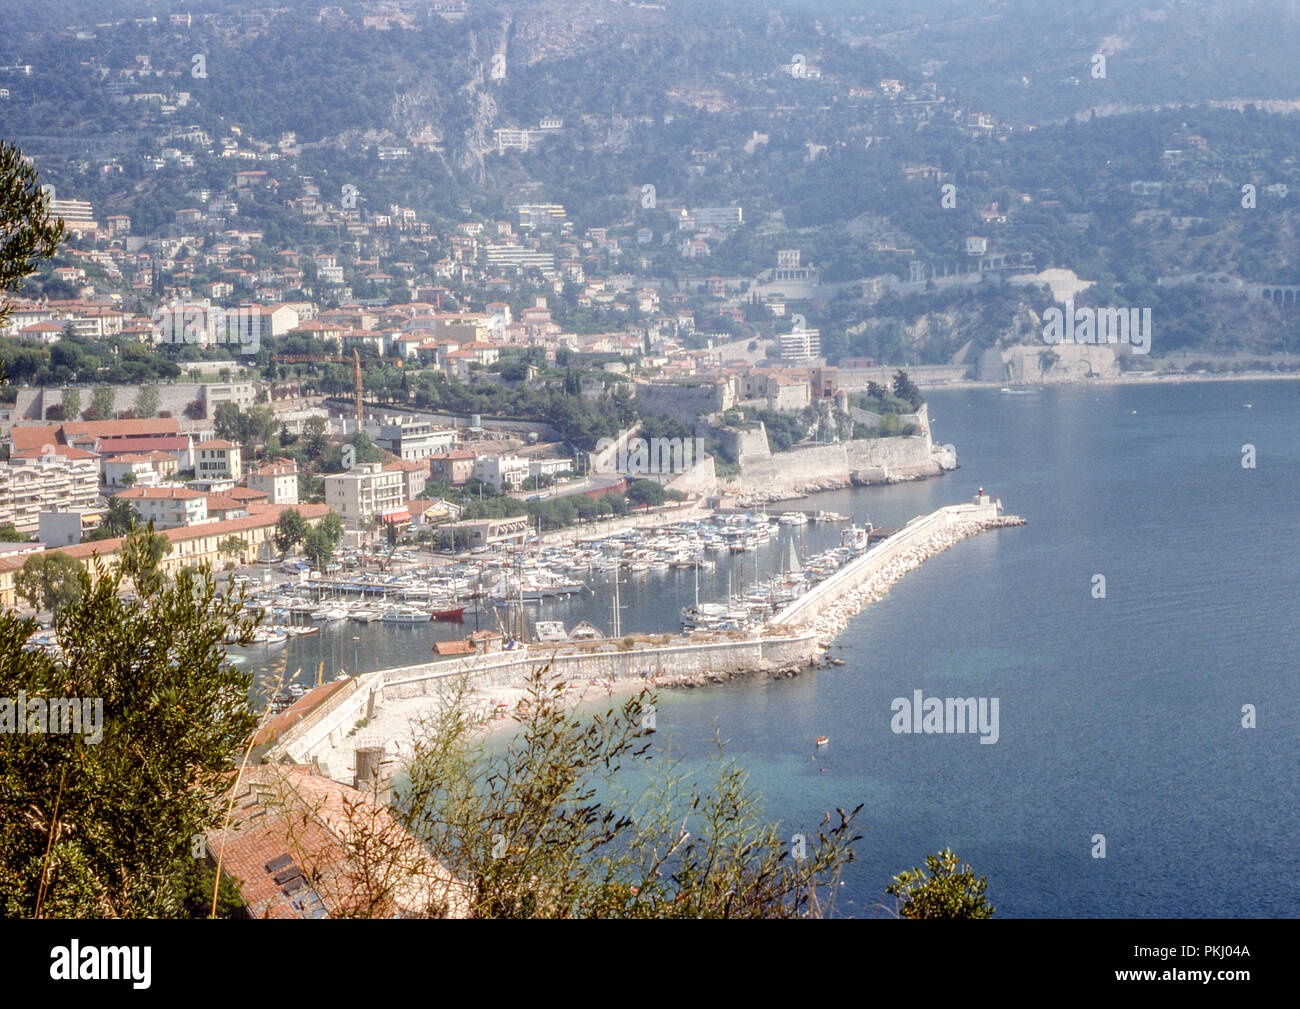 Villefranche-sur-Mer, on the French Riviera taken in August 1975 on 35mm colour slide film. - Stock Image